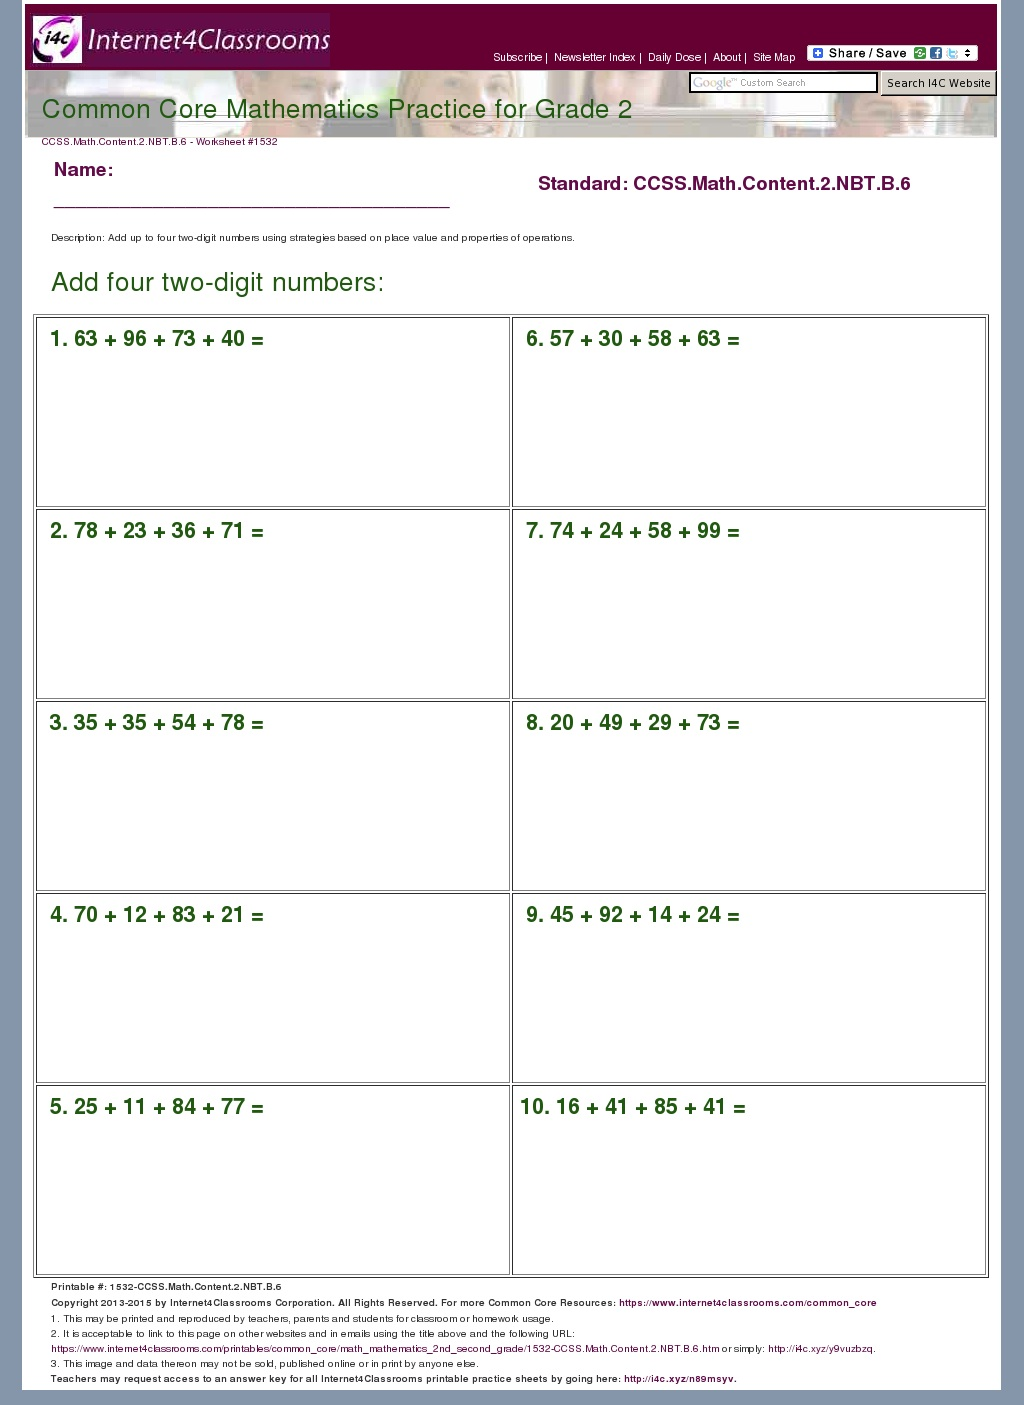 worksheet Math Common Core Worksheets common core math grade 2 worksheets nbt 1 place value 2nd 1532 ccss content b 6 mathematics core